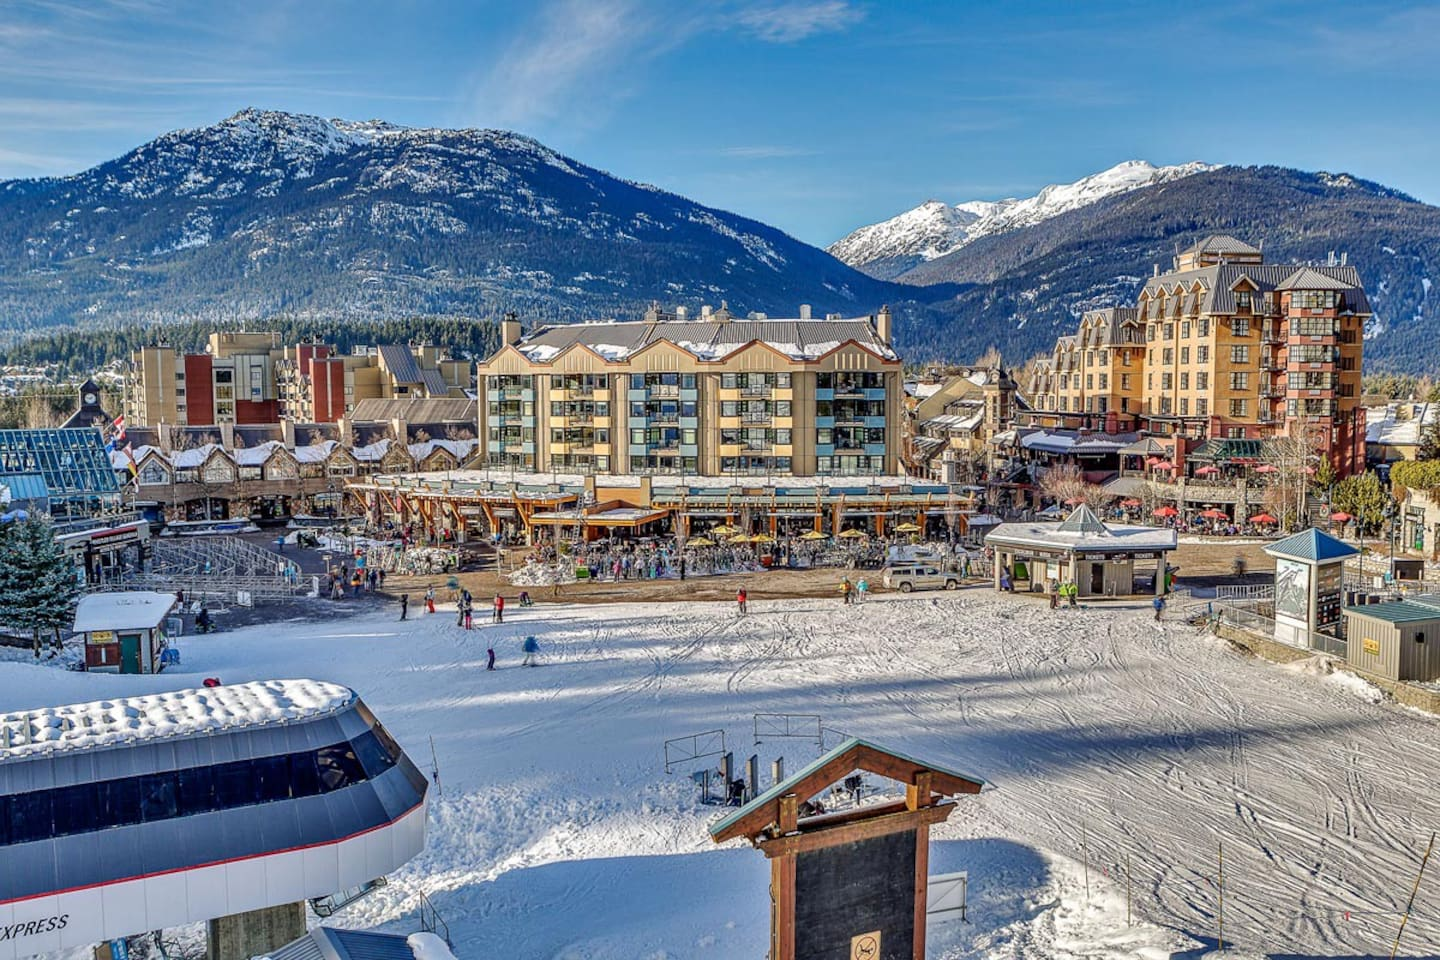 The absolute best location in all Whistler, The Carleton Lodge is located next to lifts and in the center of everything!